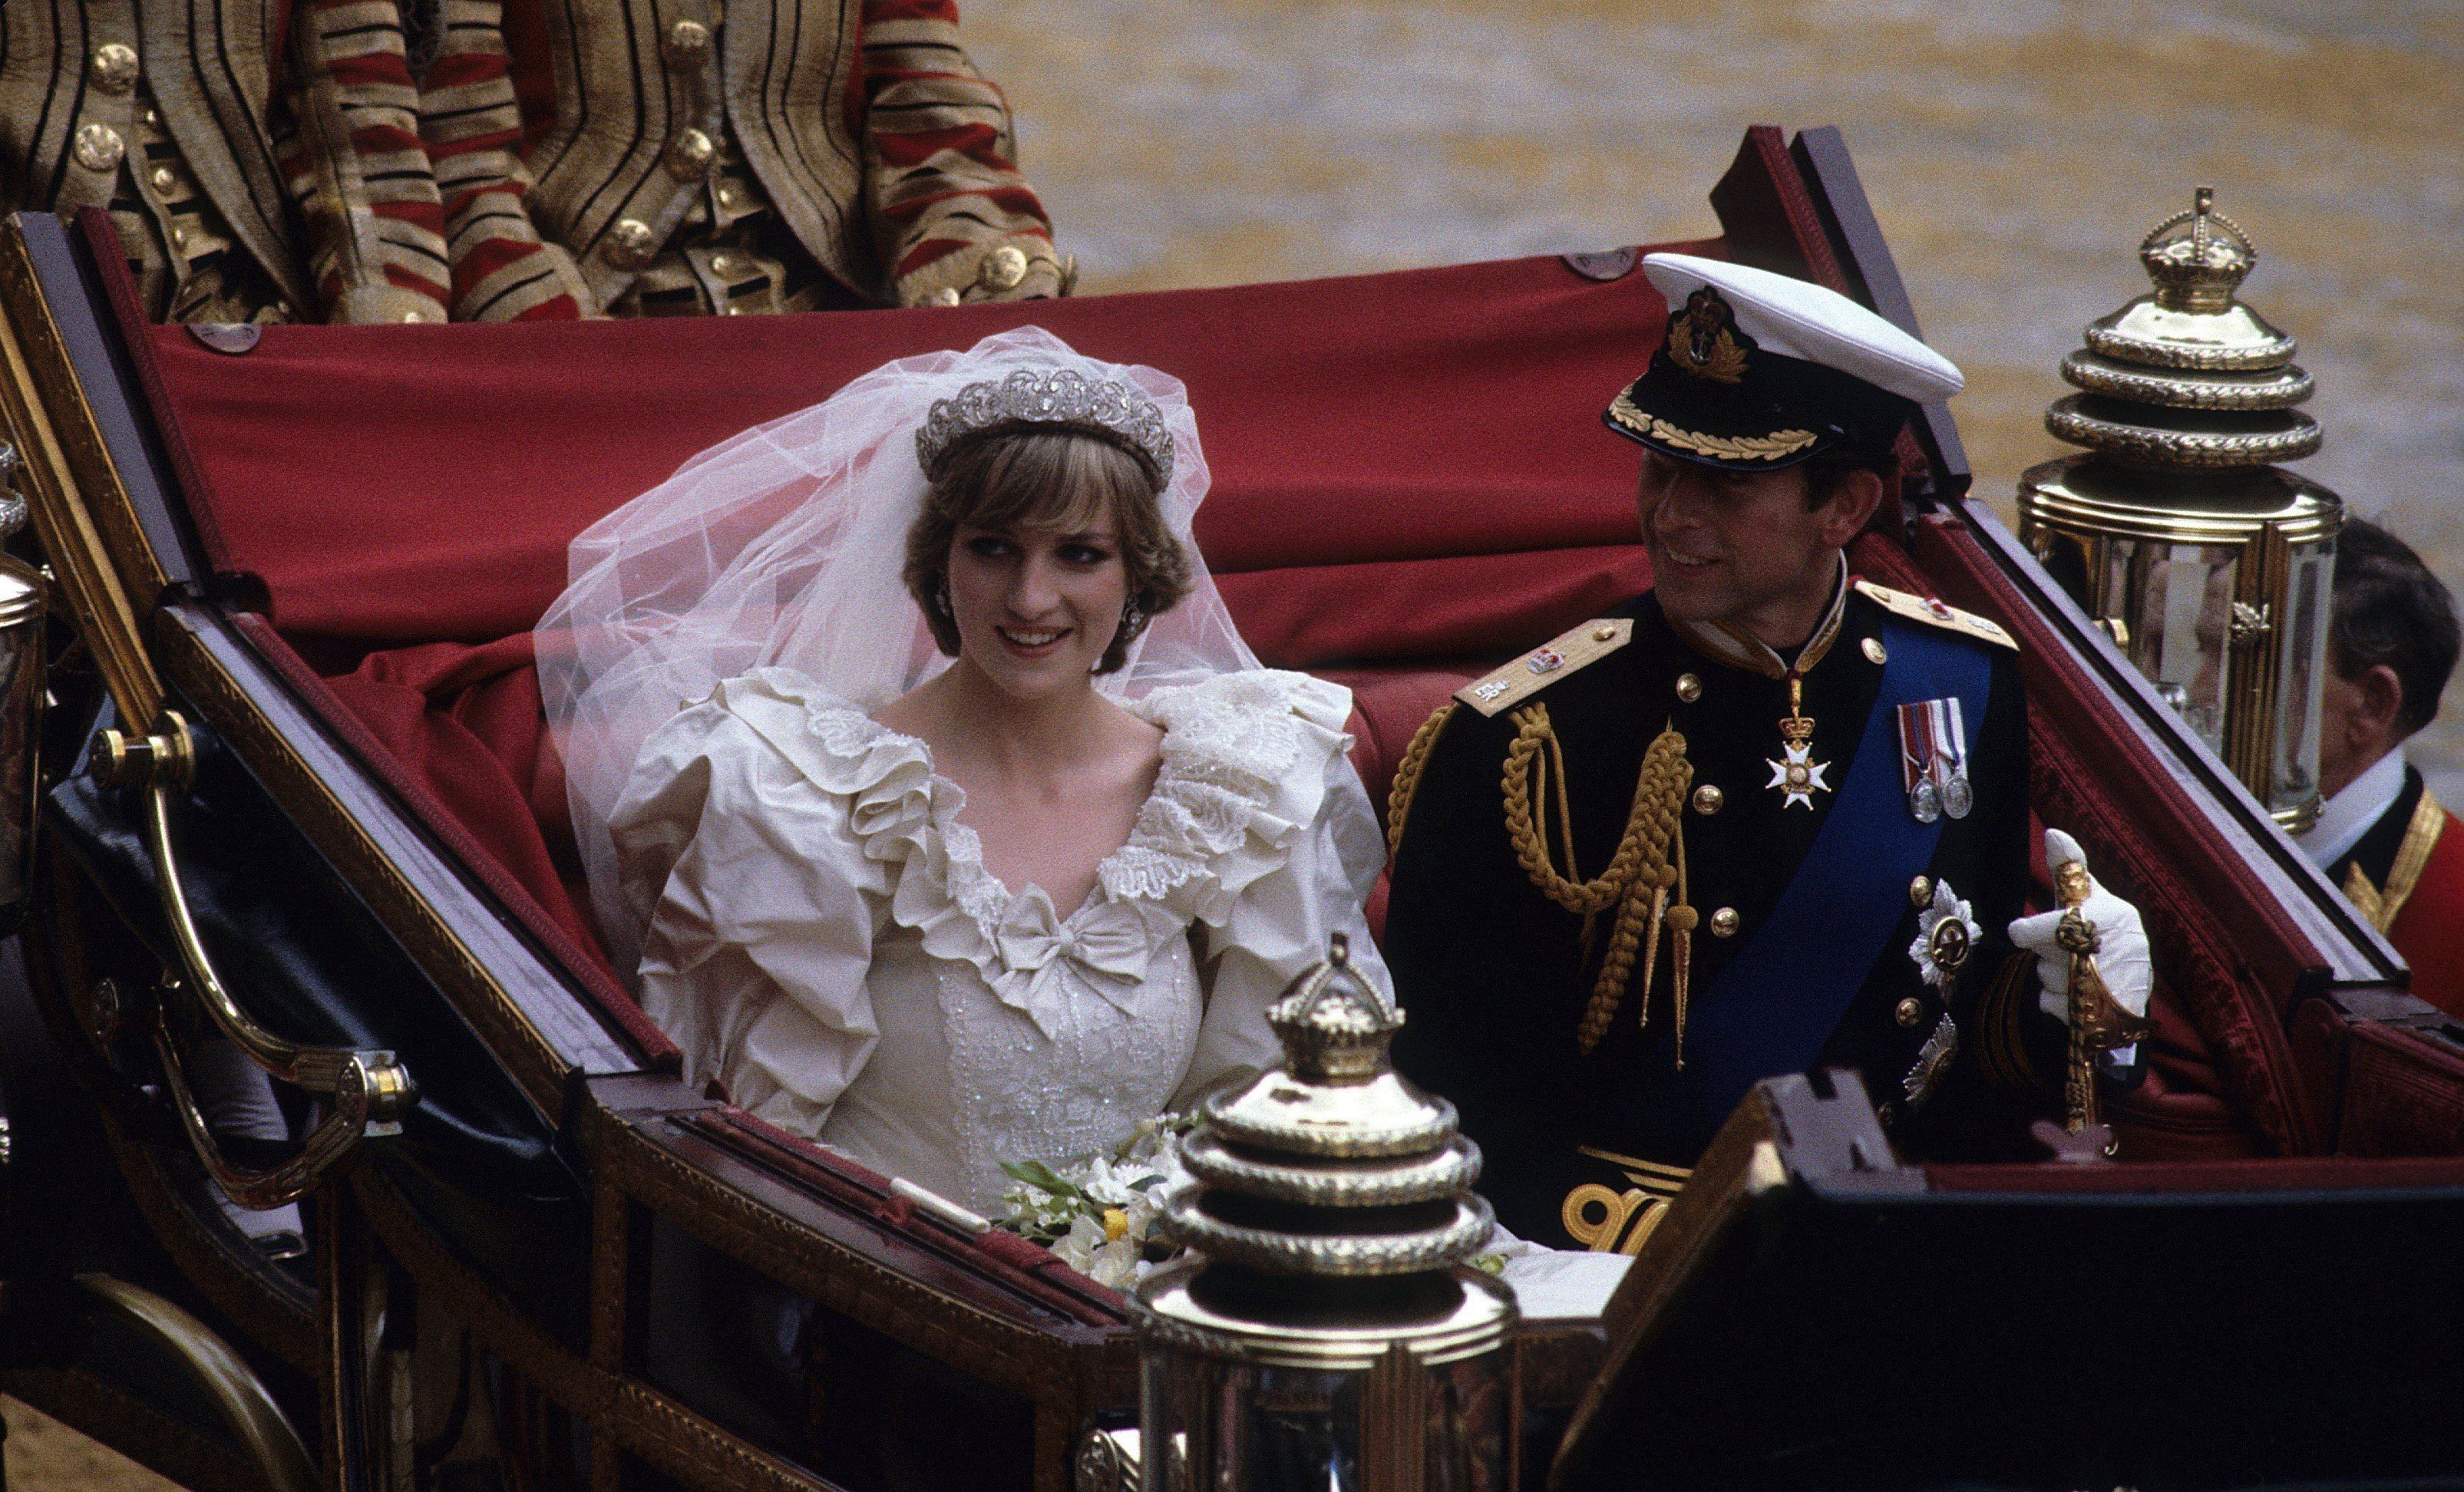 Prince Charles and Princess Diana rode in an open carriage, from St. Paul's Cathedral to Buckingham Palace, following their wedding on July 29, 1981   Photo: Getty Images